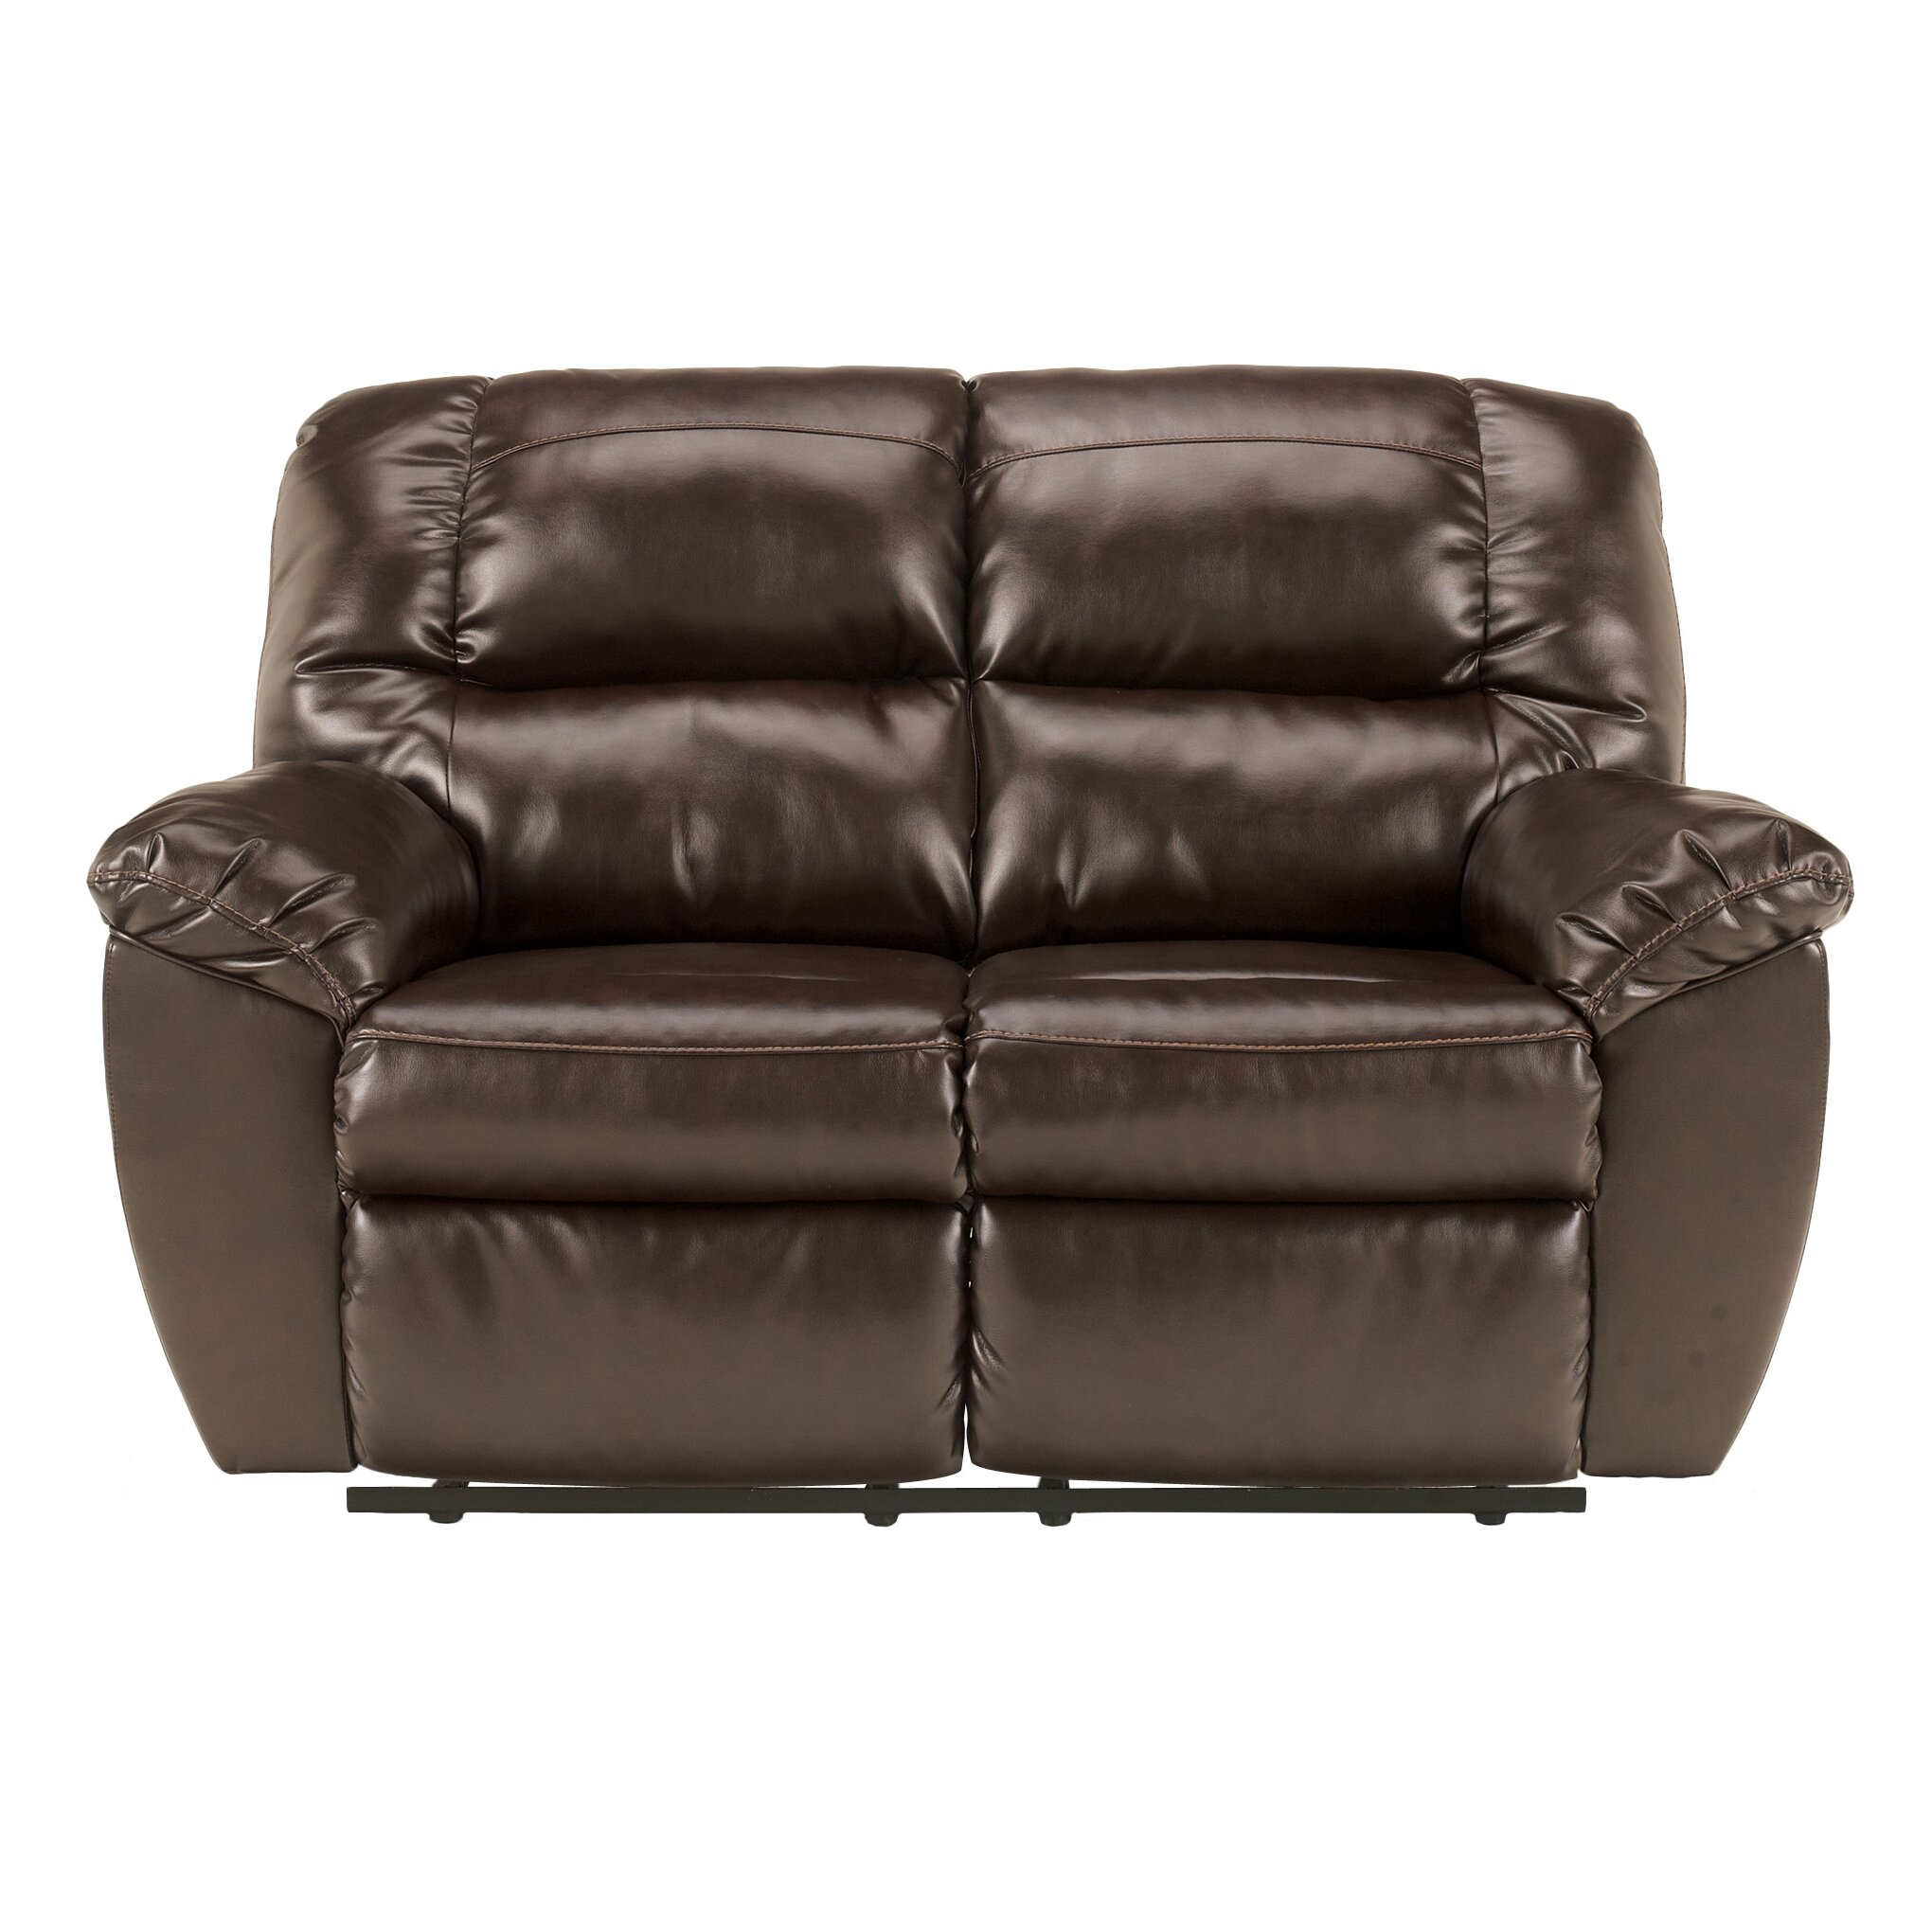 Signature Design By Ashley Ruth Reclining Loveseat Reviews Wayfair